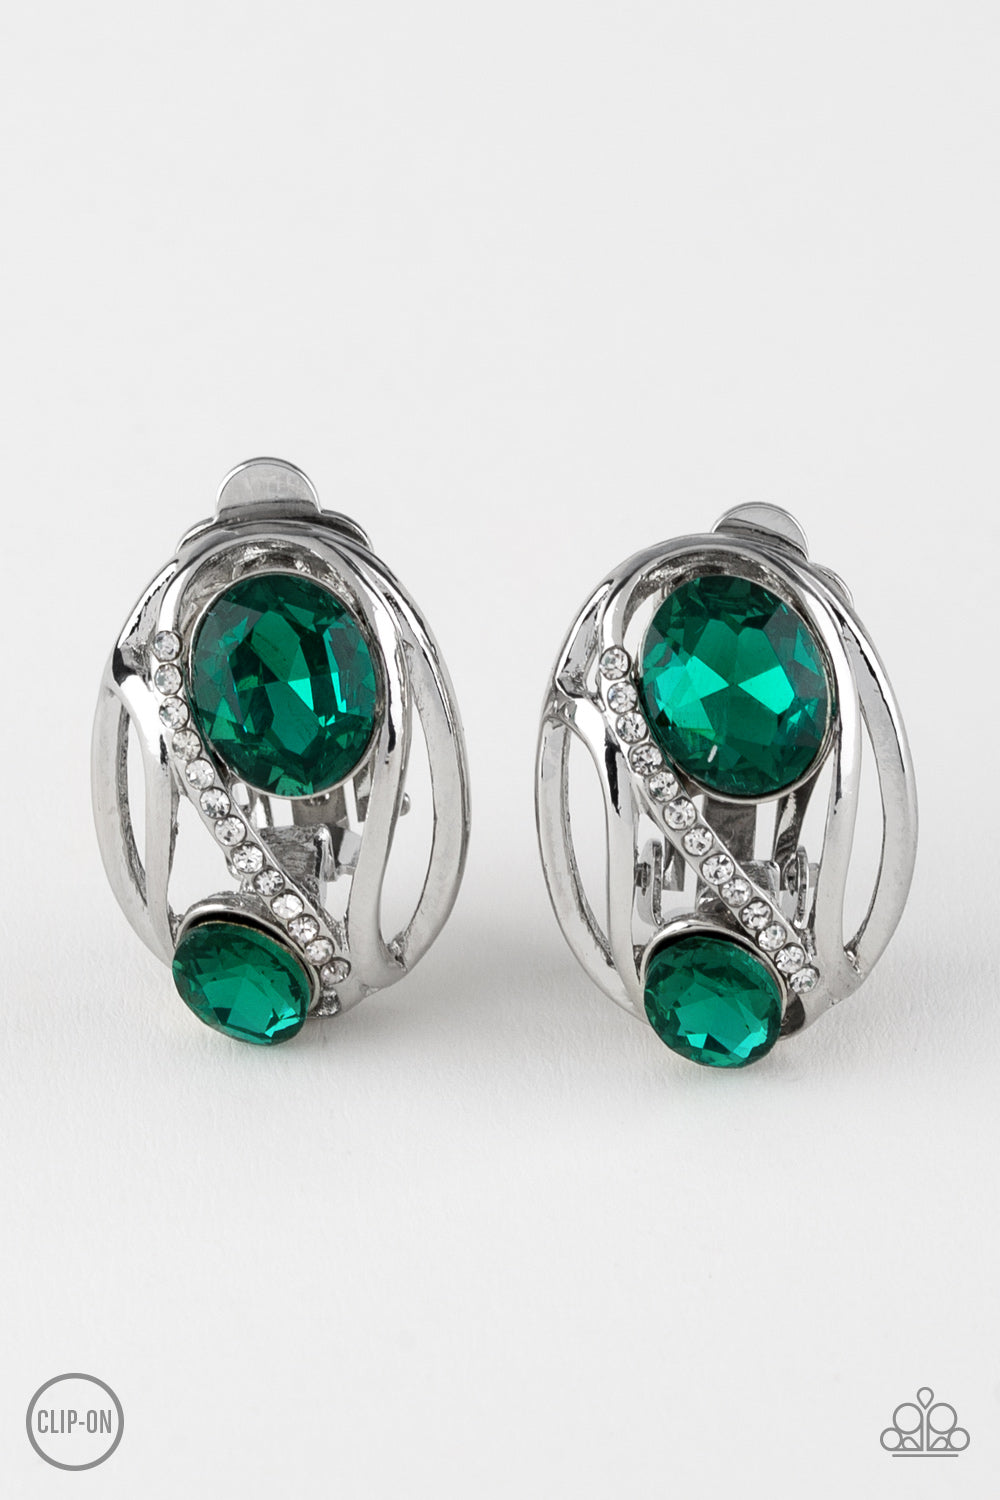 Paparazzi Accessories - Wheres The FIREWORK? - Green Earrings - JMJ Jewelry Collection